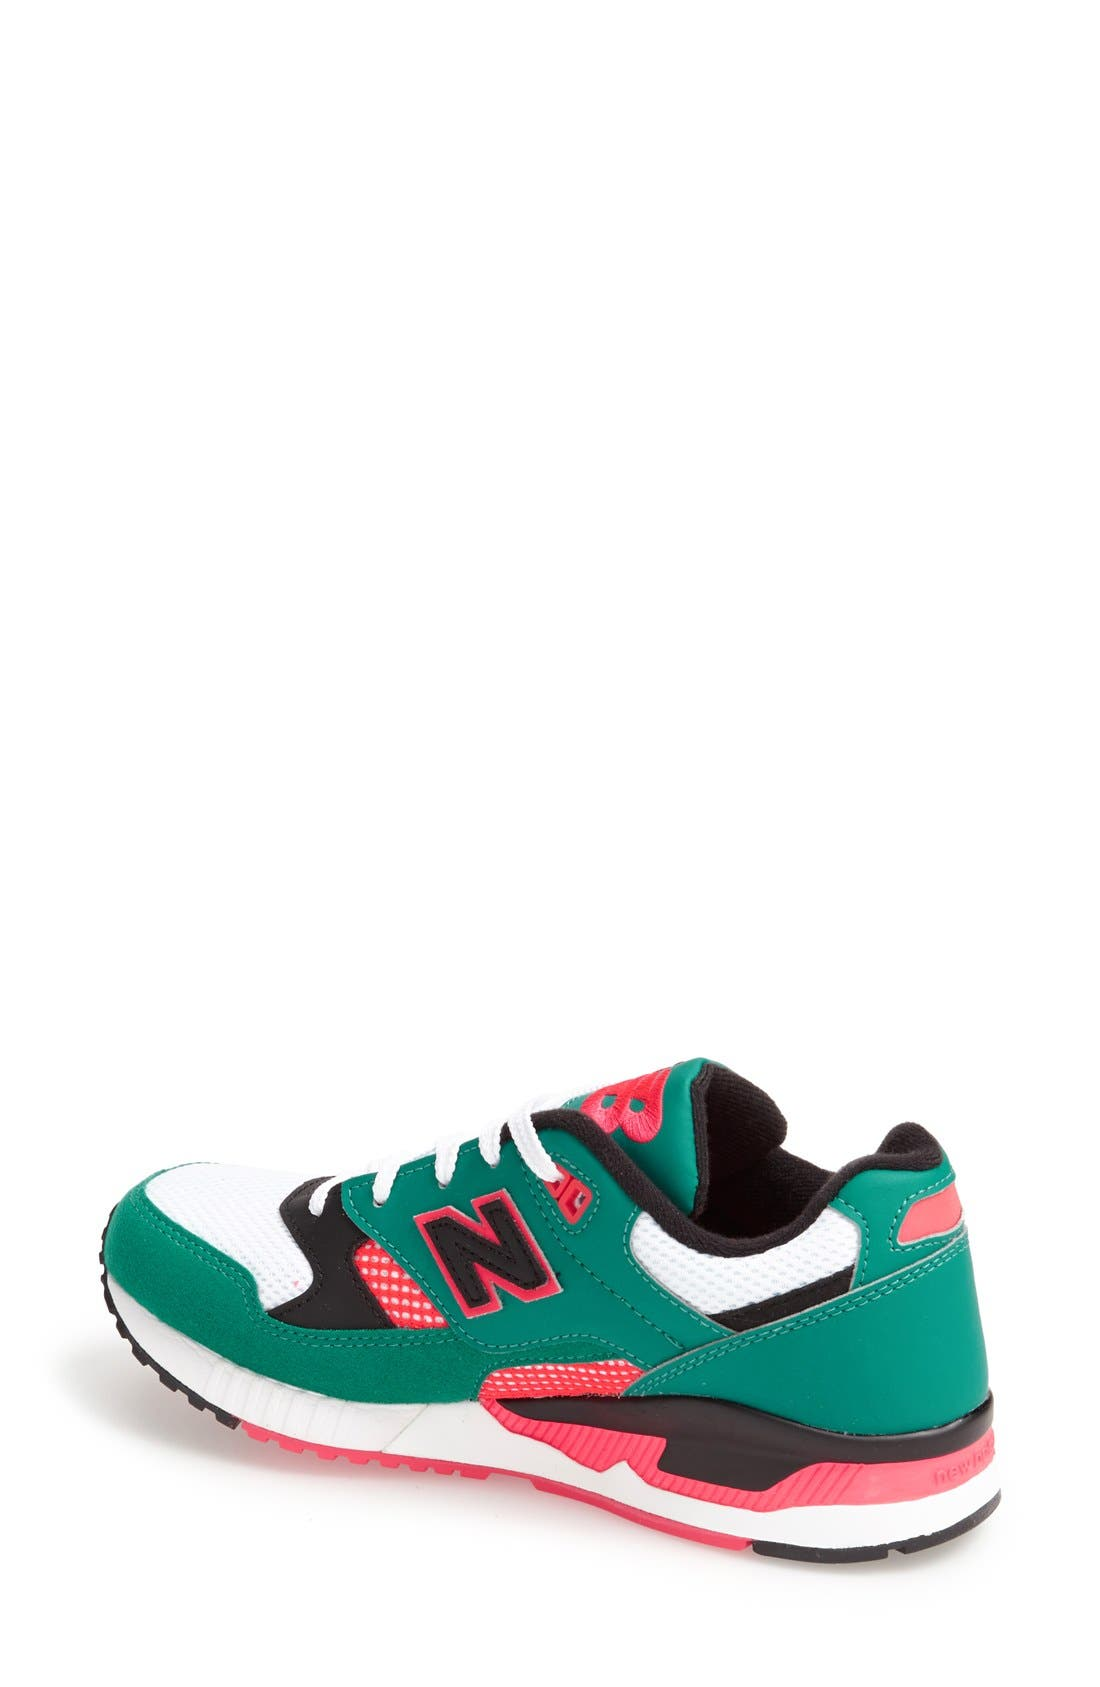 Alternate Image 2  - New Balance '530' Sneaker (Women)